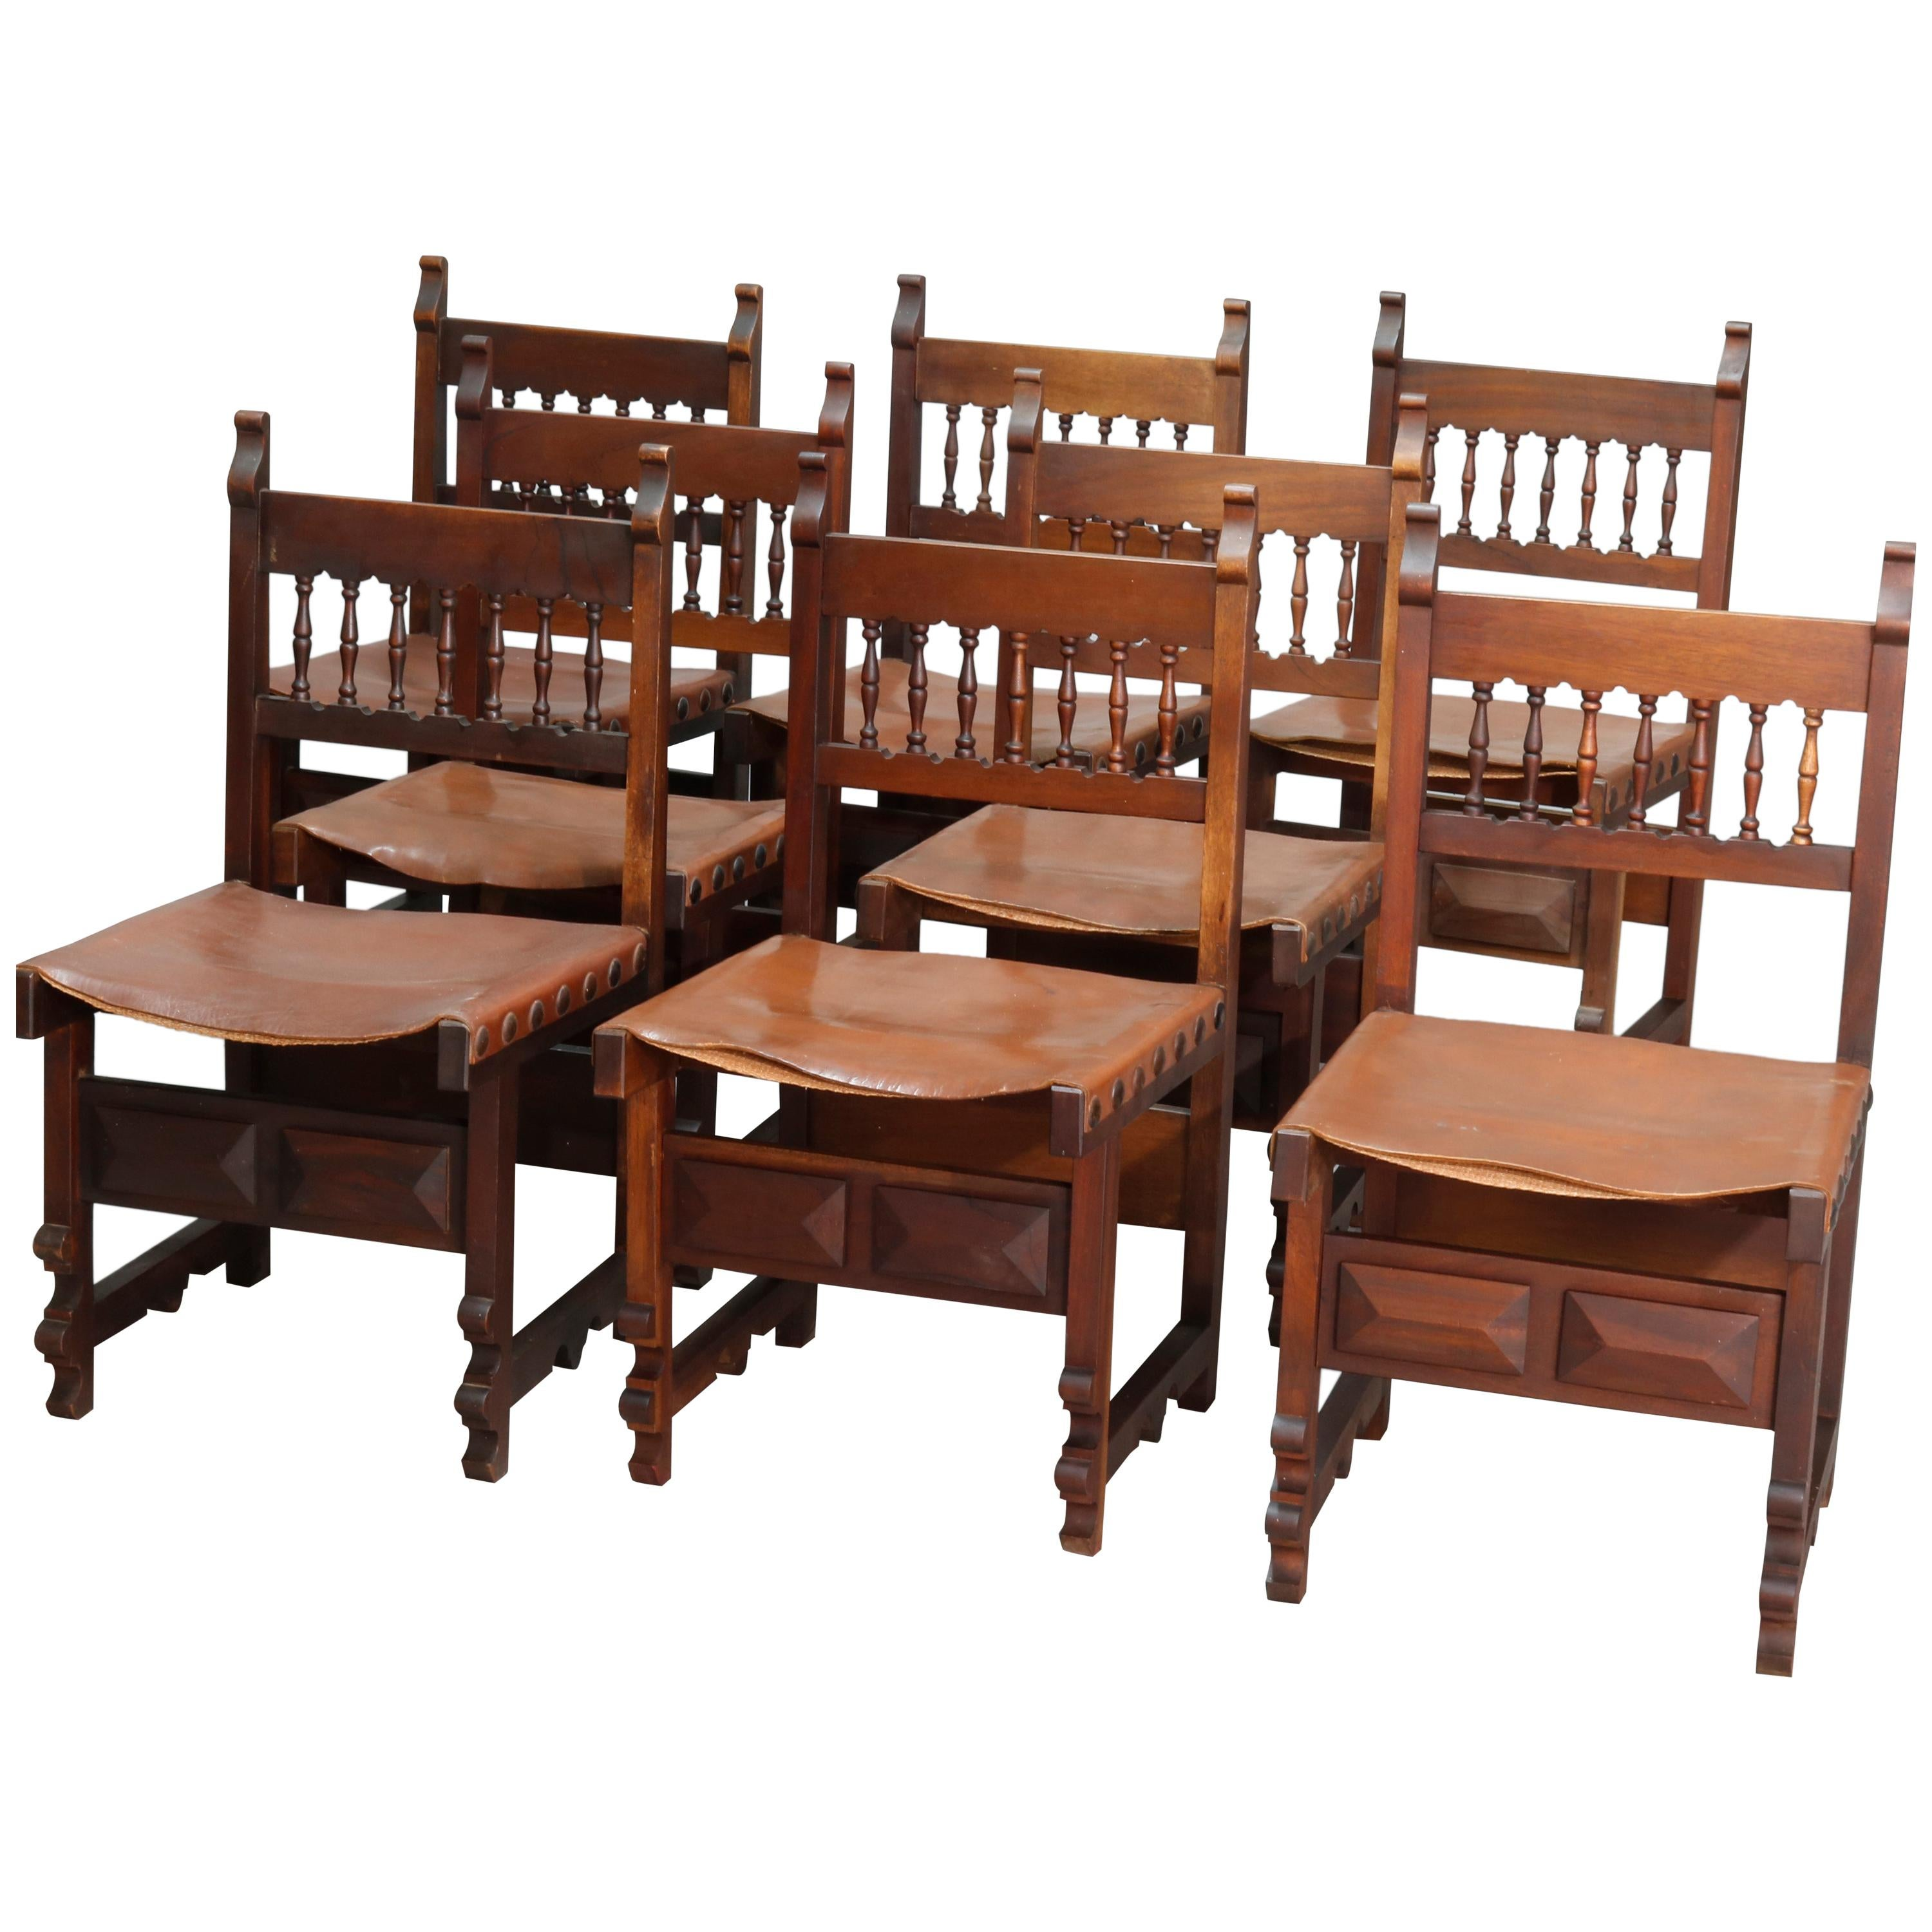 Set of Eight Antique French Renaissance Walnut and Leather Dining Chairs